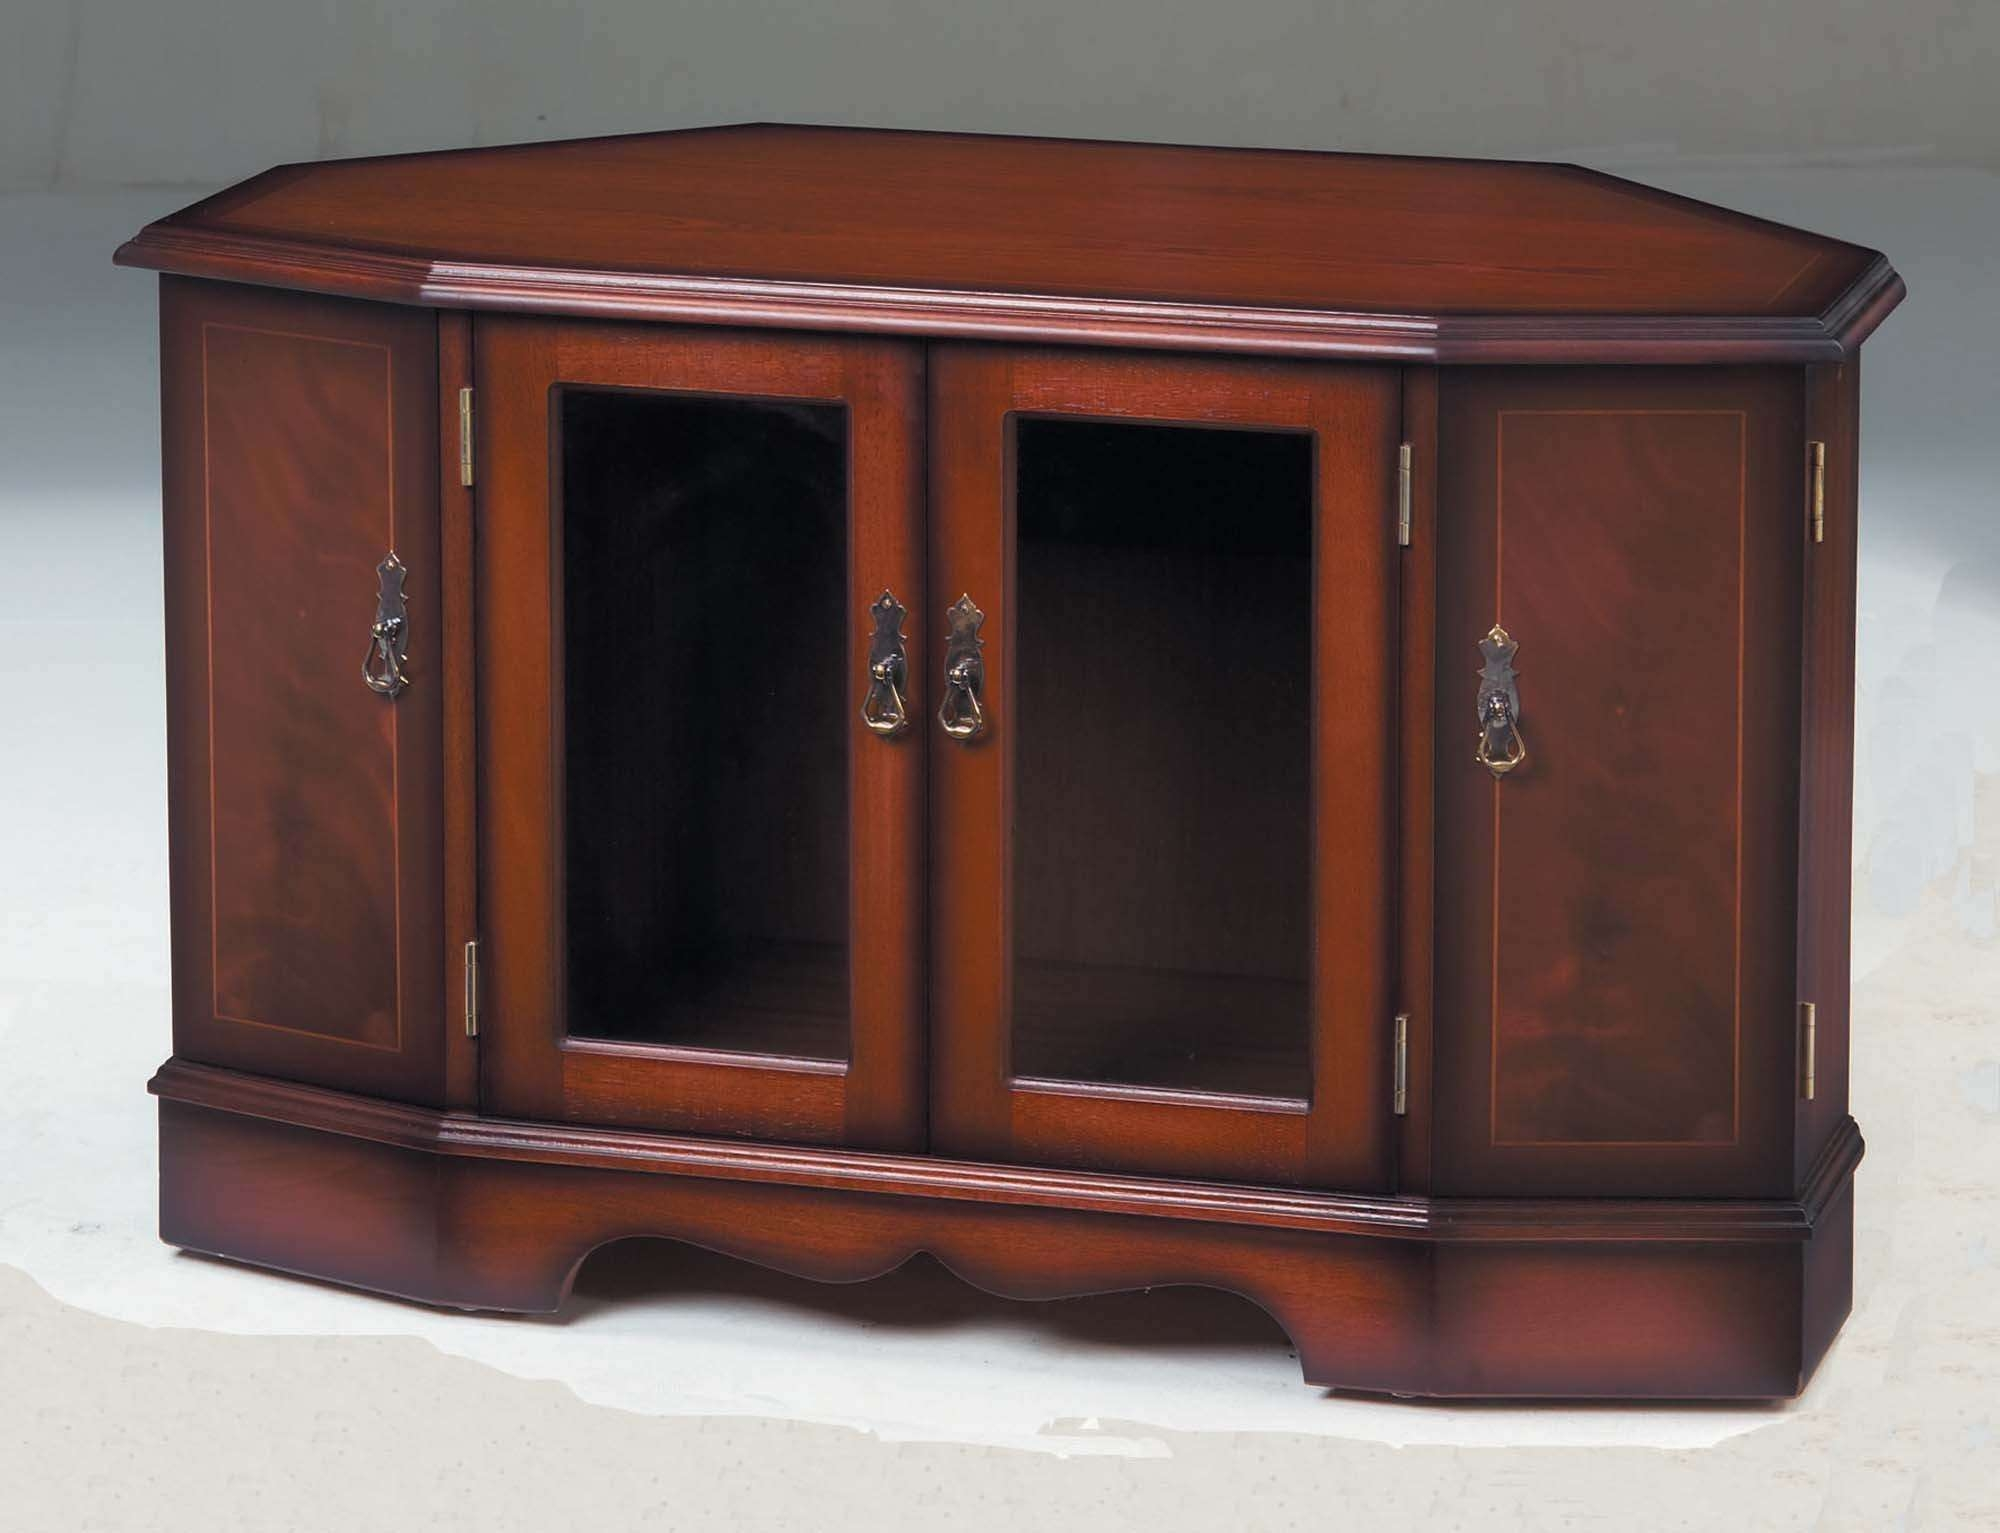 Strongbow Mahogany 1037 Corner Tv Cabinet | Tr Hayes – Furniture Within Mahogany Corner Tv Cabinets (View 15 of 20)